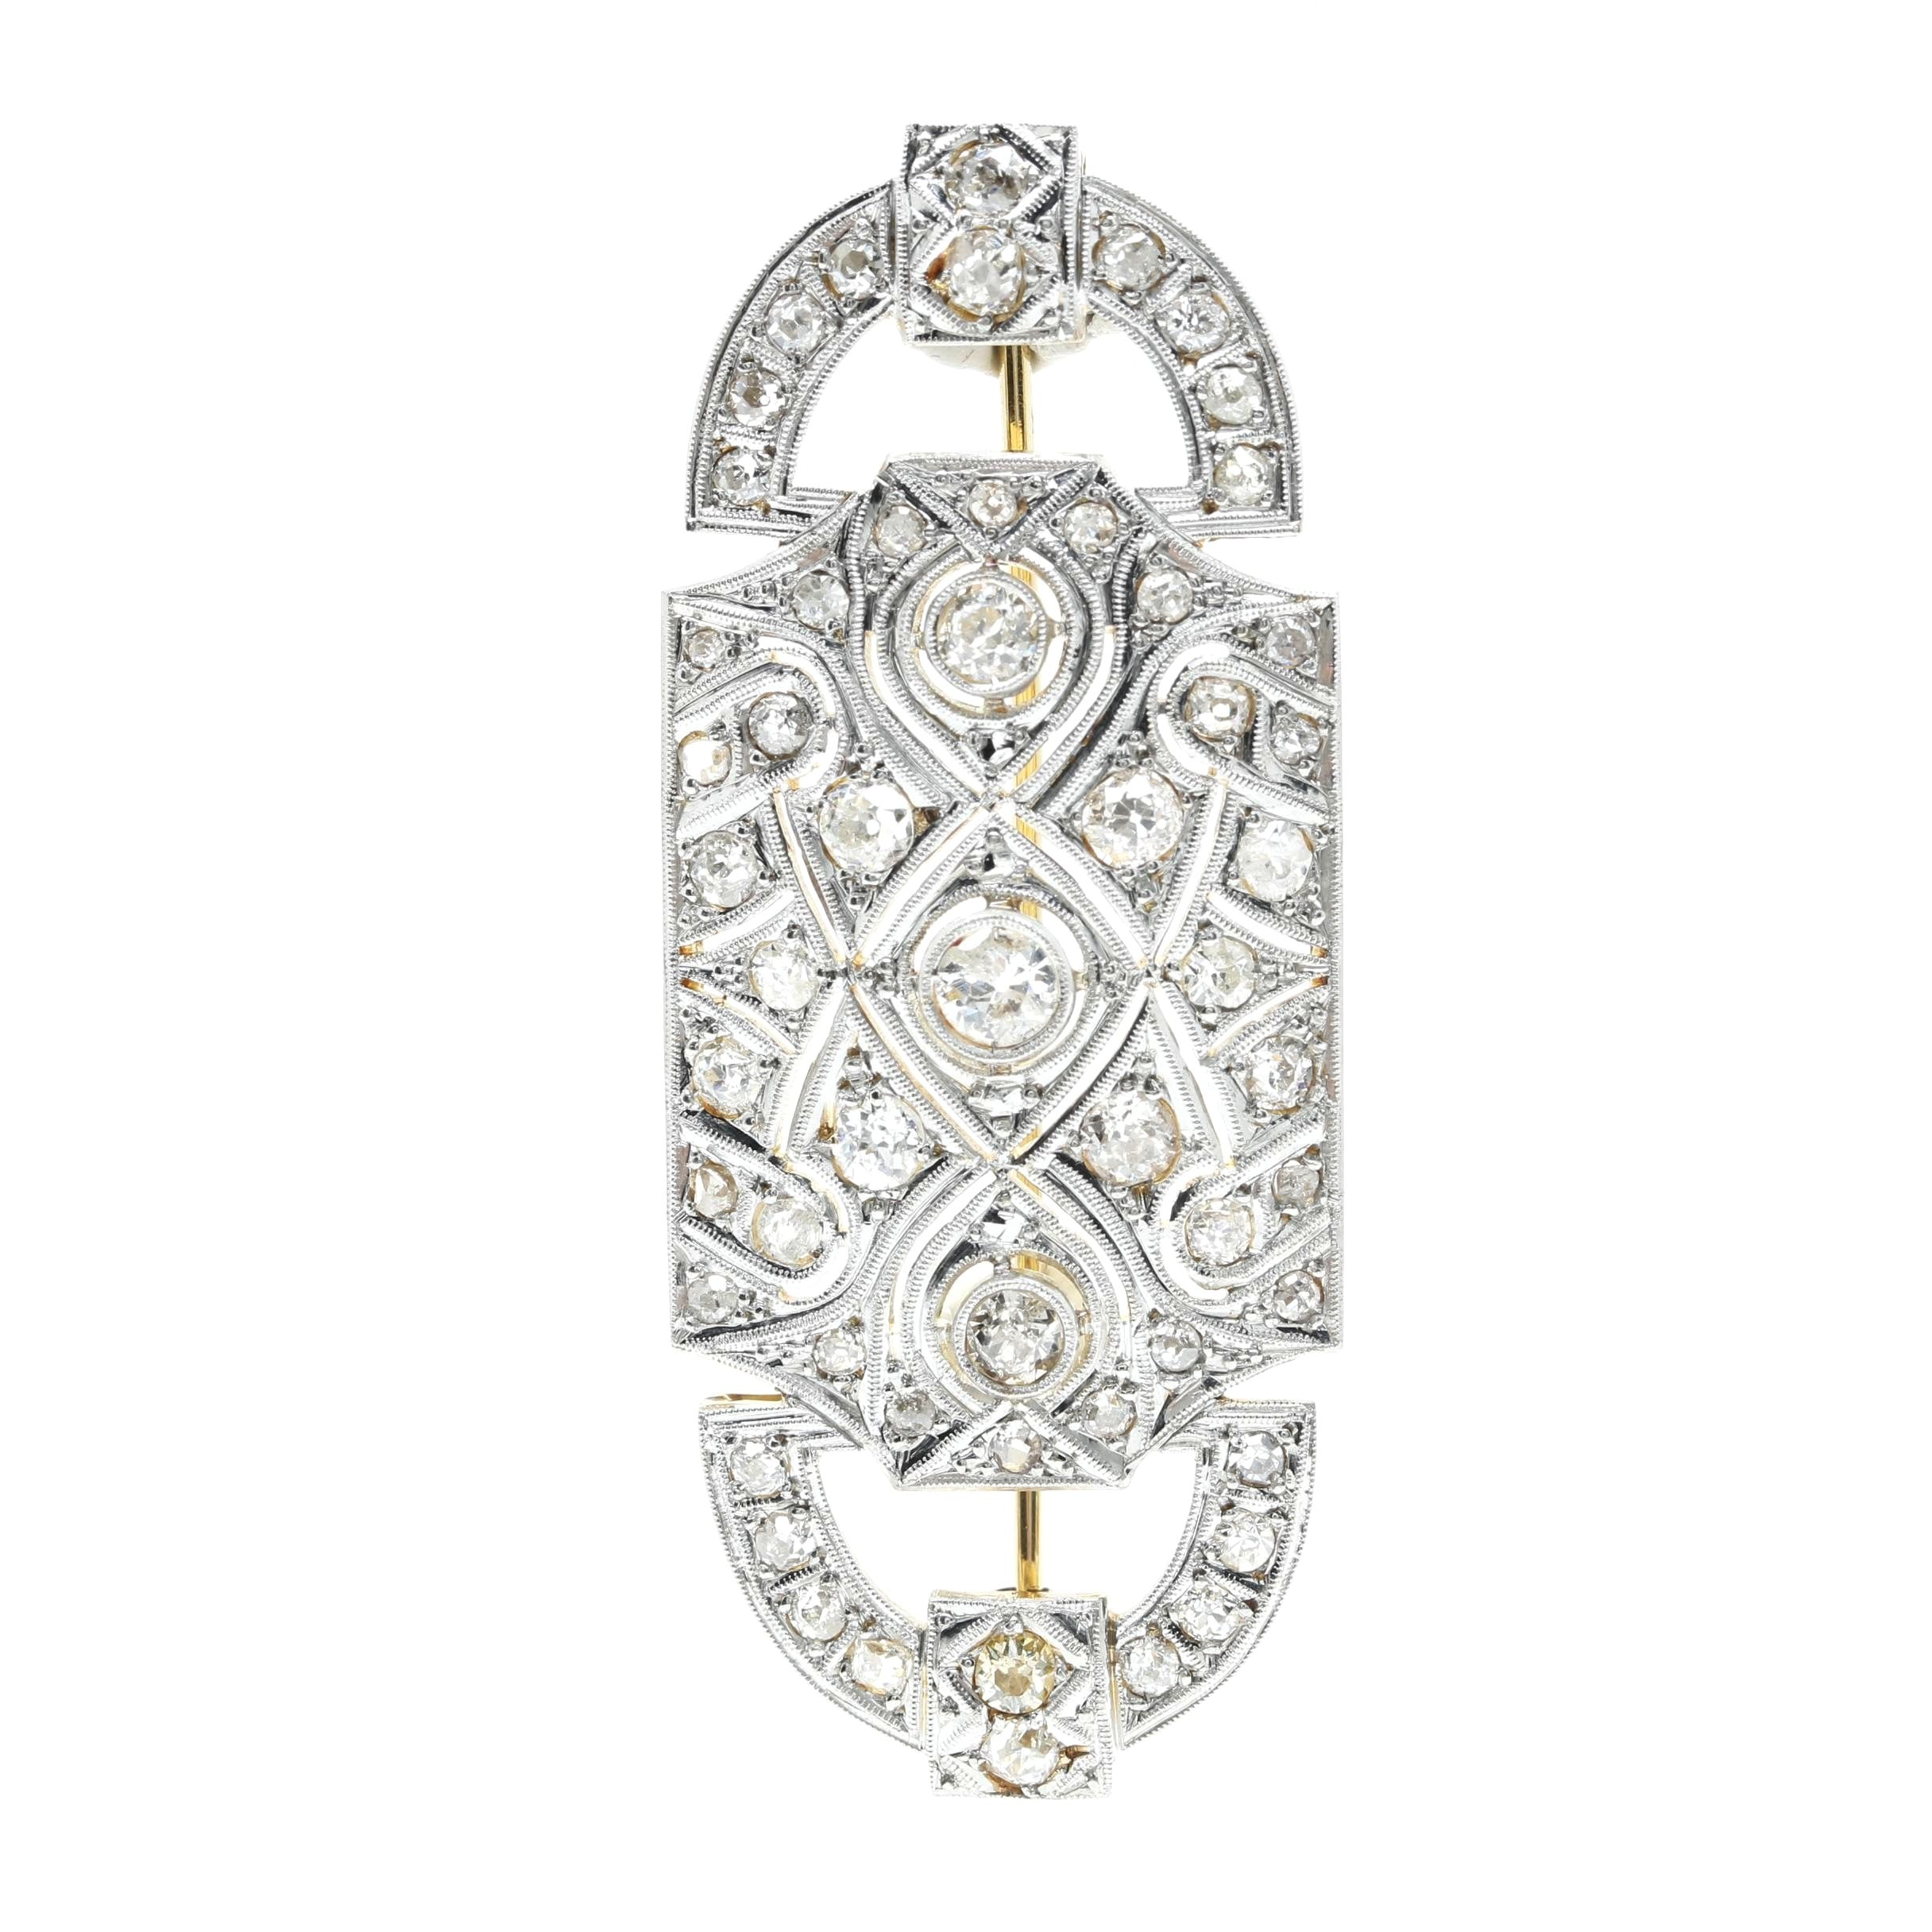 Edwardian Platinum and 18K Yellow Gold 2.00 CTW Diamond Brooch